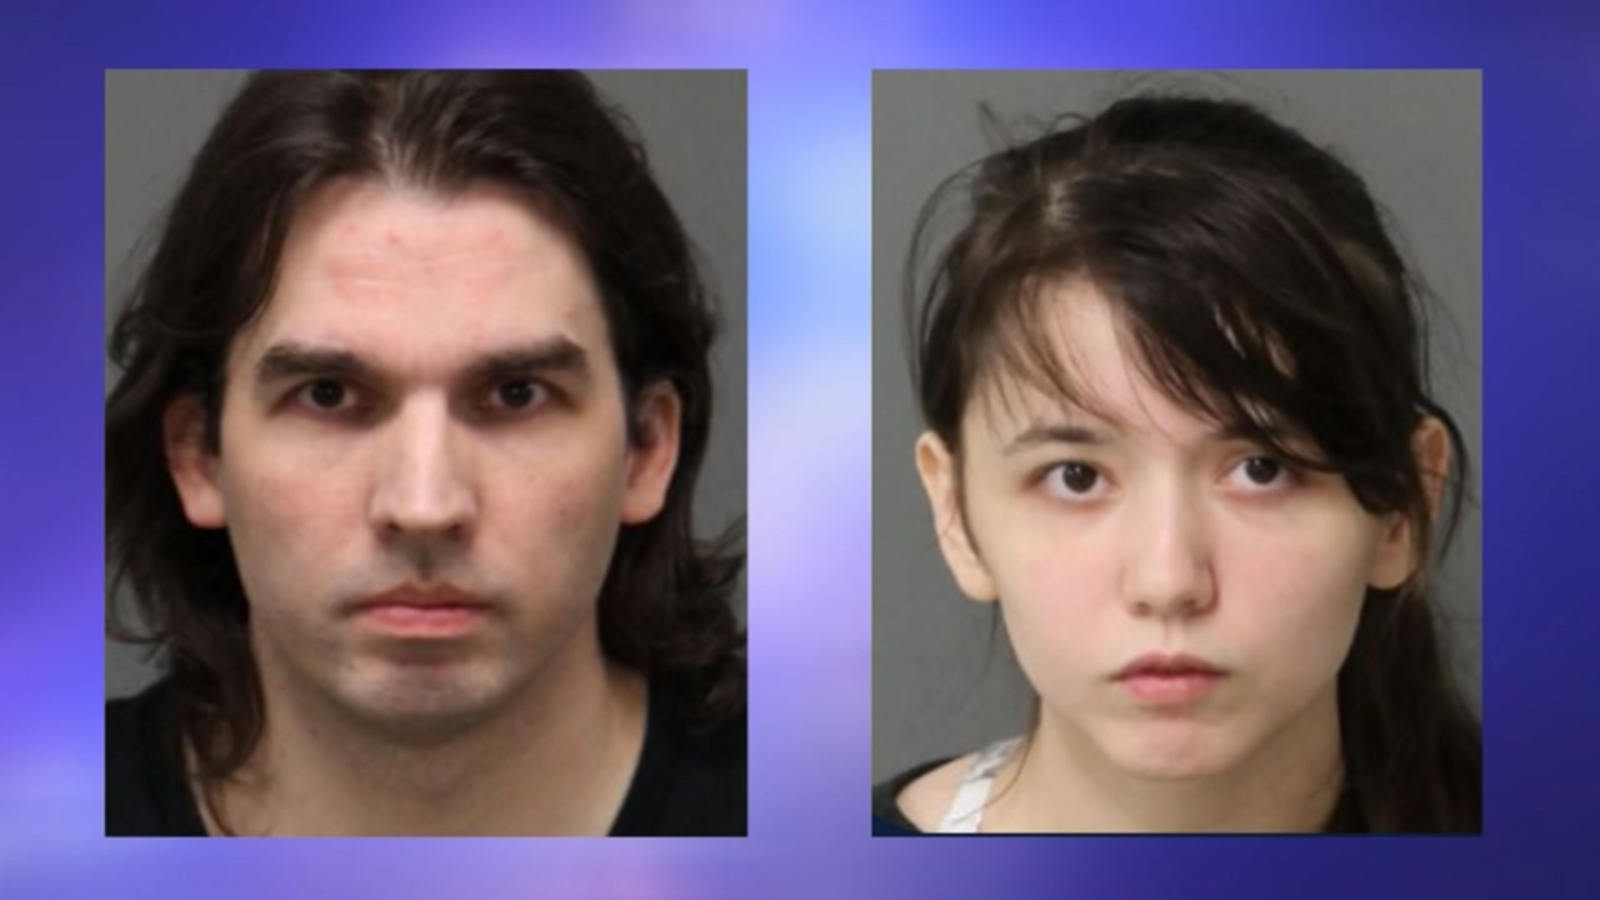 North Carolina father, biological daughter charged with incest after having baby together - ABC7 New York